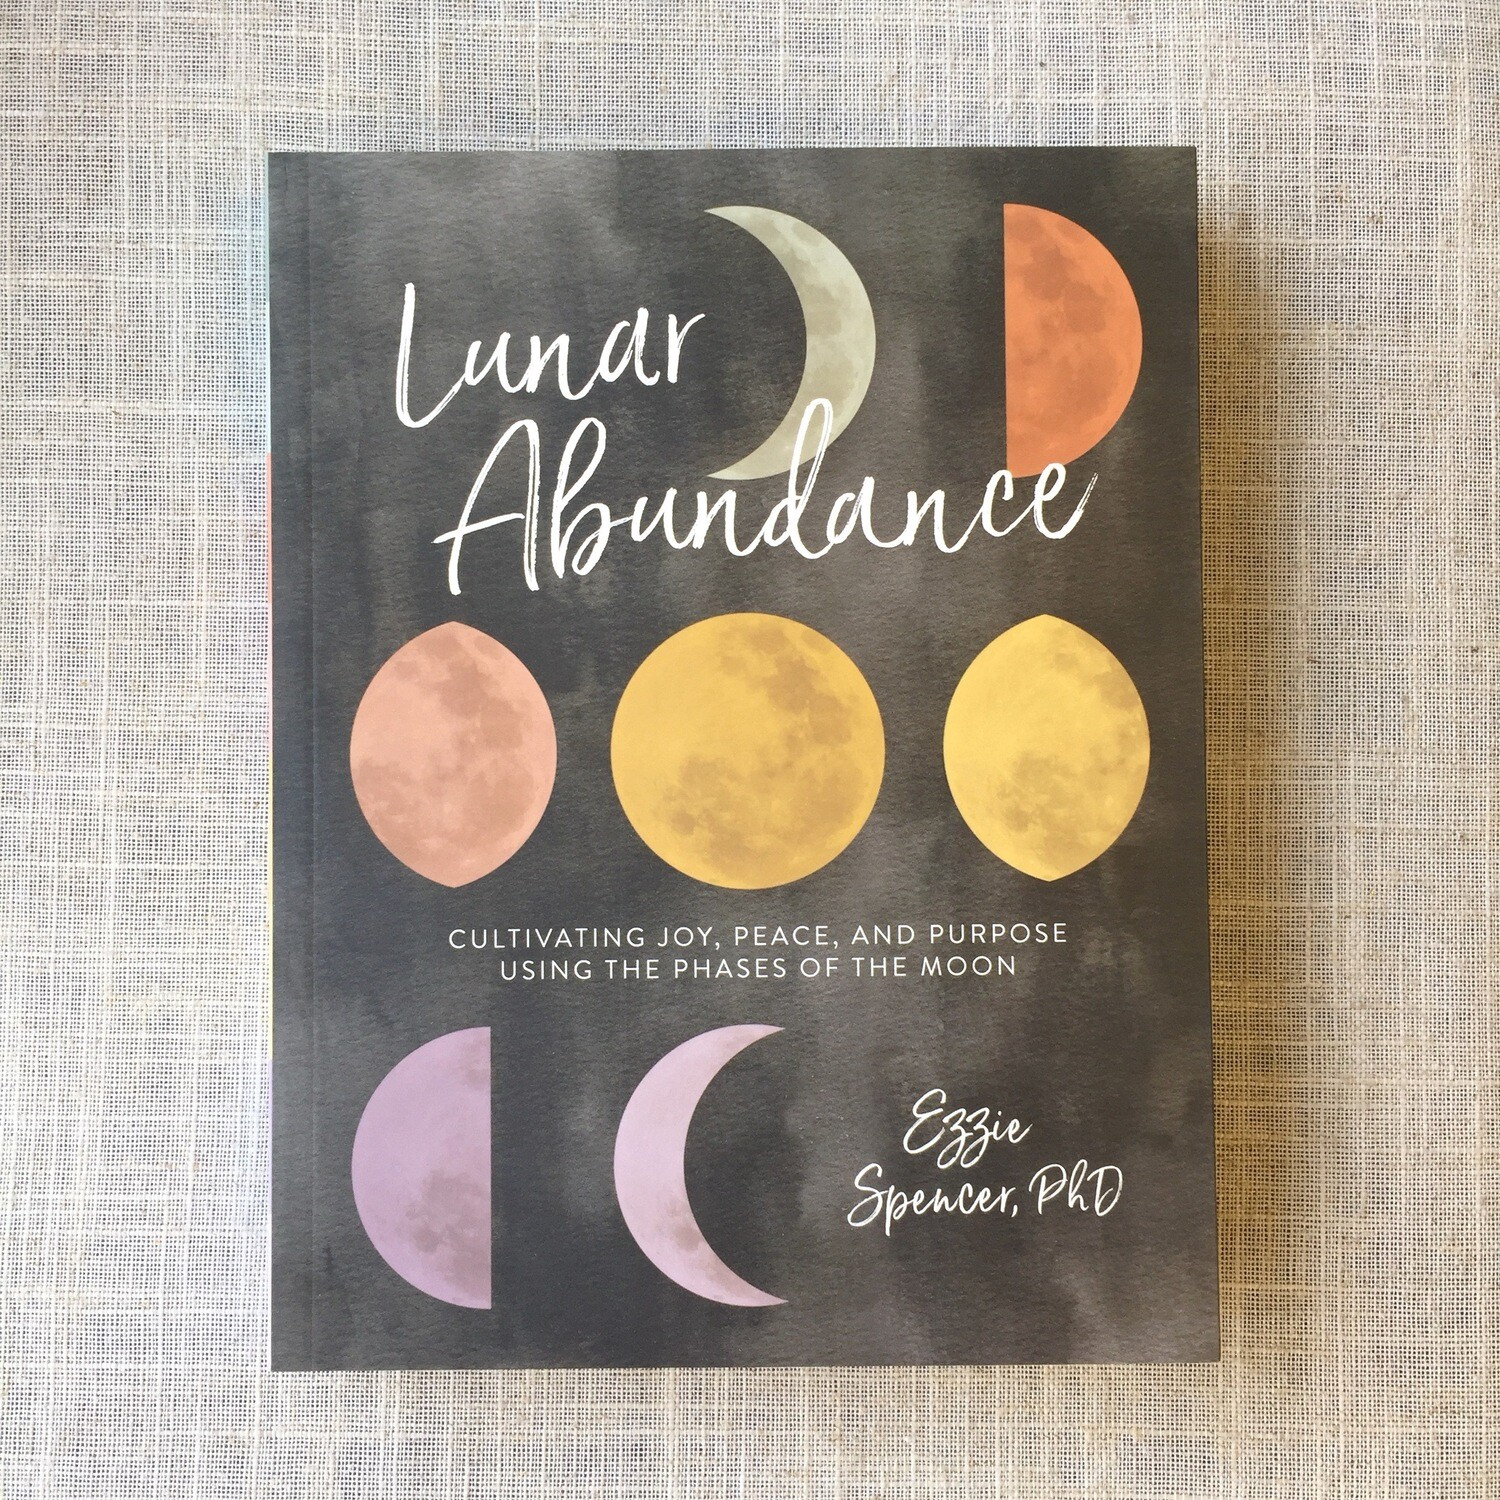 Lunar Abundance: Cultivating Joy, Peace, and Purpose Using the Phases of the Moon Paperback